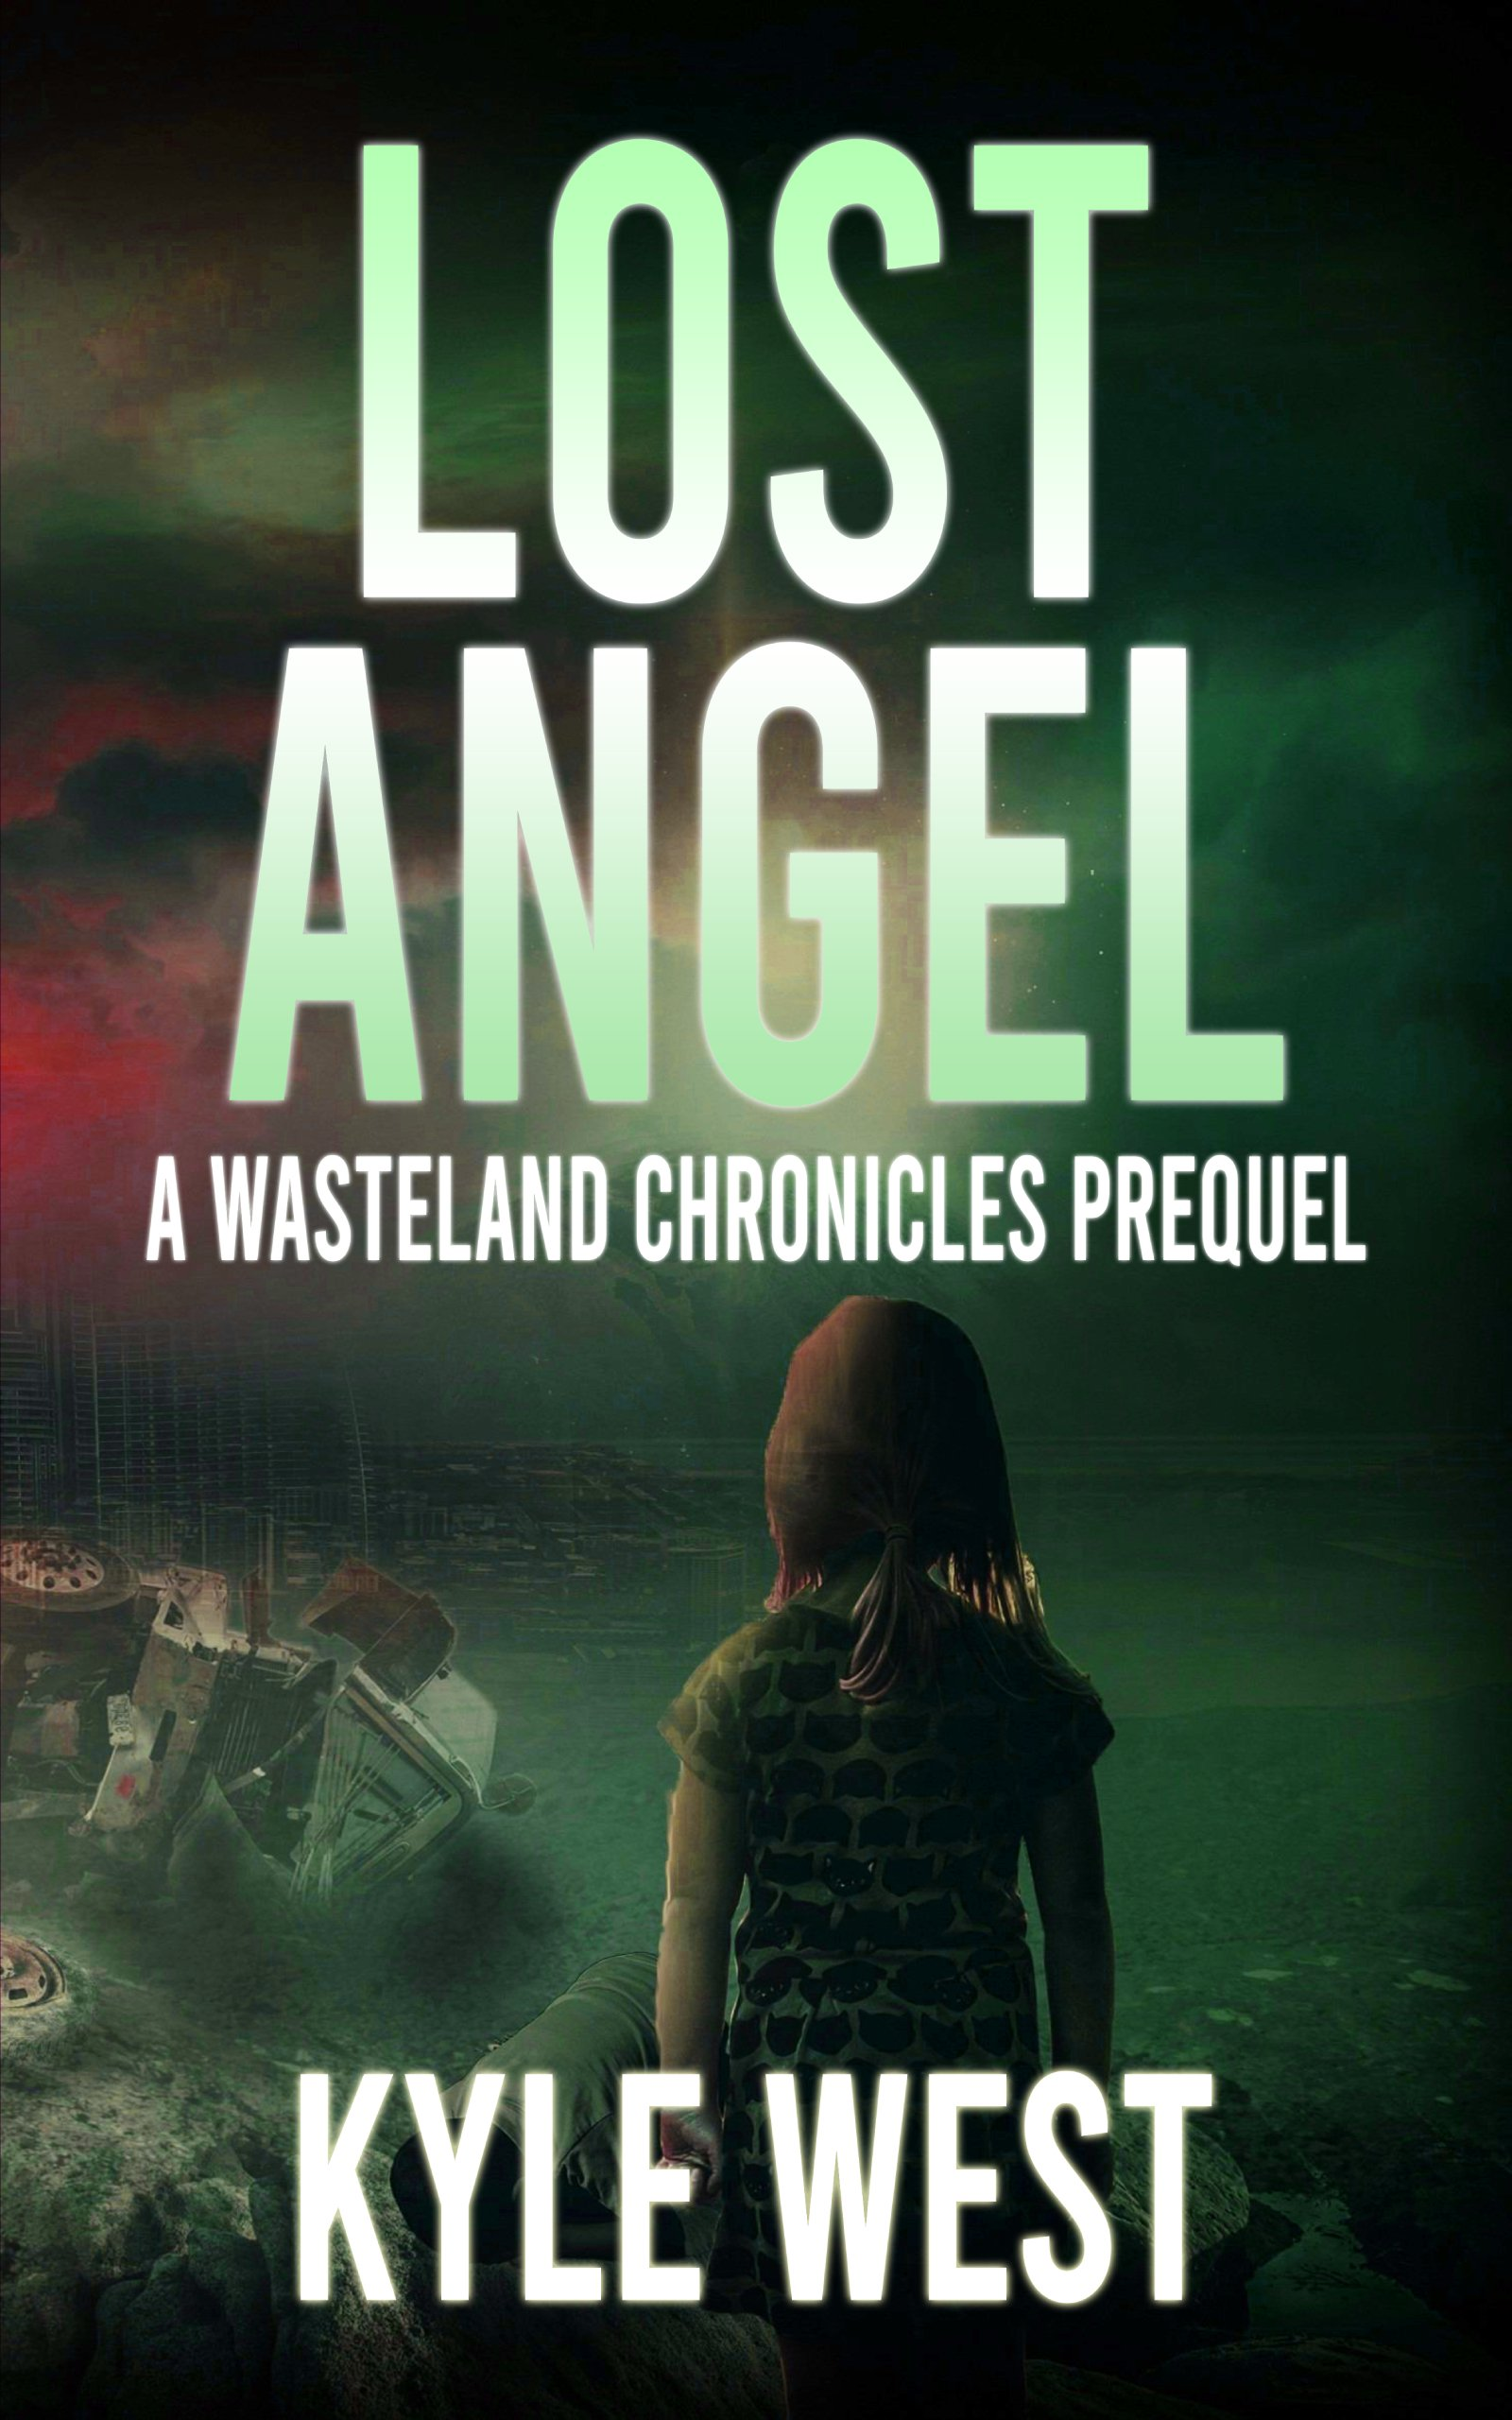 LOST ANGEL released!